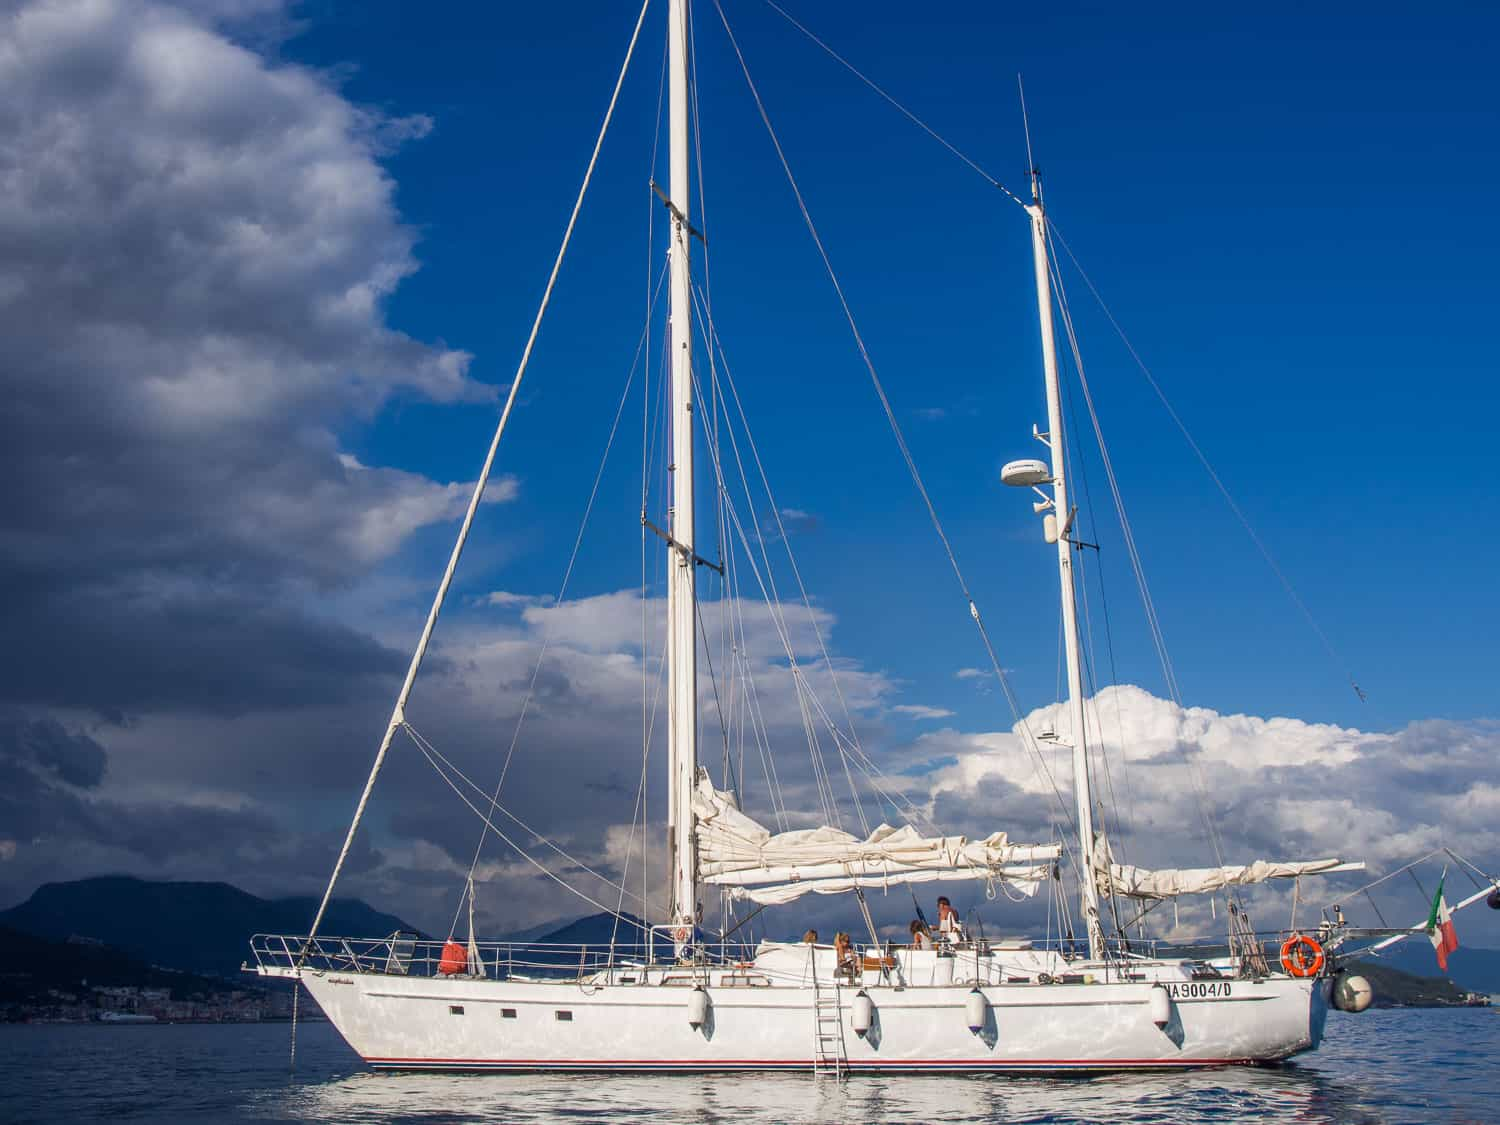 Intersailclub review- cabin charter on Milaplacidus yacht